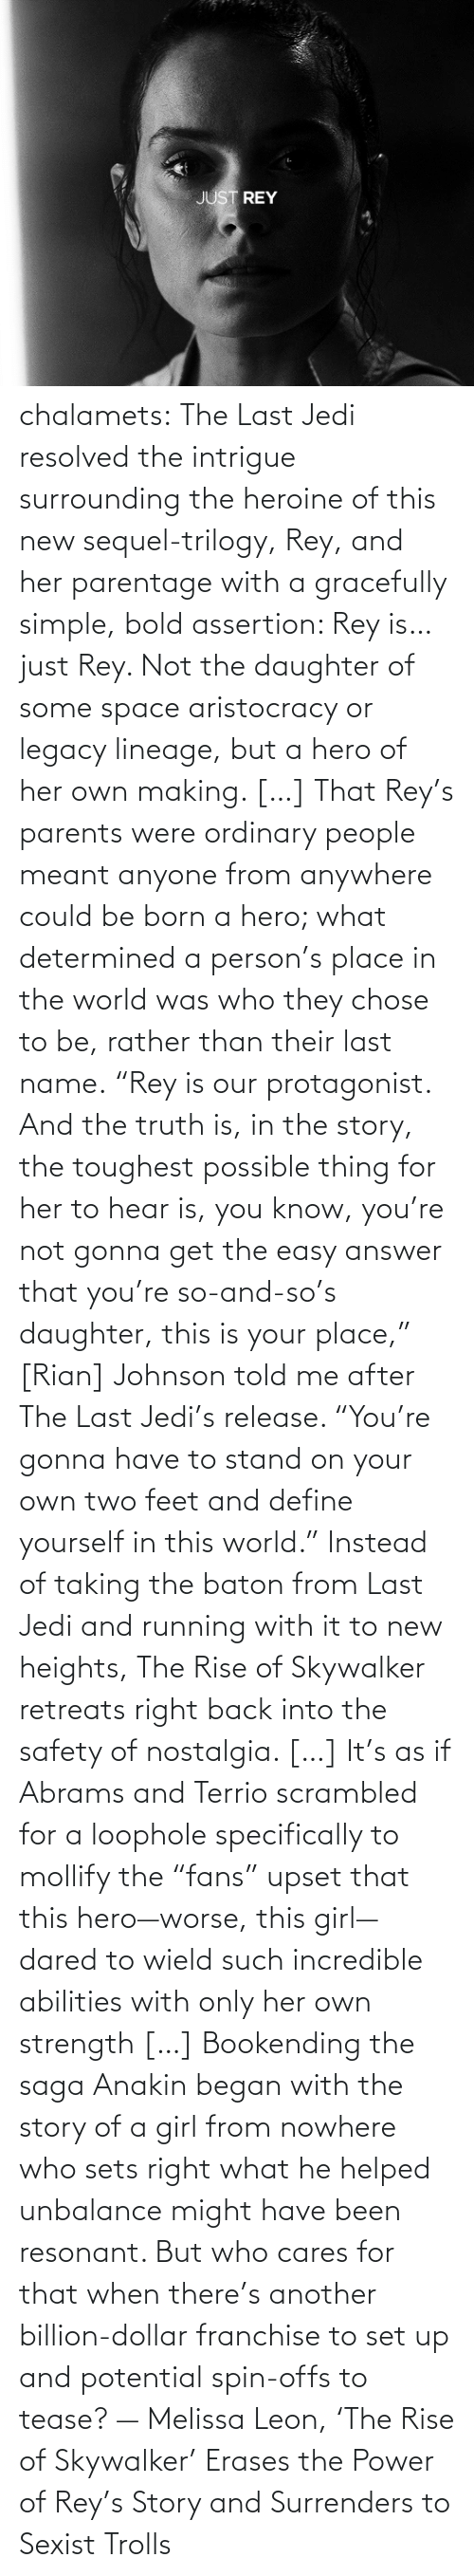 "Is Just: chalamets:  The Last Jedi resolved the intrigue surrounding the heroine of this new sequel-trilogy, Rey, and her parentage with a gracefully simple, bold assertion: Rey is… just Rey. Not the daughter of some space aristocracy or legacy lineage, but a hero of her own making. […] That Rey's parents were ordinary people meant anyone from anywhere could be born a hero; what determined a person's place in the world was who they chose to be, rather than their last name. ""Rey is our protagonist. And the truth is, in the story, the toughest possible thing for her to hear is, you know, you're not gonna get the easy answer that you're so-and-so's daughter, this is your place,"" [Rian] Johnson told me after The Last Jedi's release. ""You're gonna have to stand on your own two feet and define yourself in this world."" Instead of taking the baton from Last Jedi and running with it to new heights, The Rise of Skywalker retreats right back into the safety of nostalgia. […] It's as if Abrams and Terrio scrambled for a loophole specifically to mollify the ""fans"" upset that this hero—worse, this girl—dared to wield such incredible abilities with only her own strength […] Bookending the saga Anakin began with the story of a girl from nowhere who sets right what he helped unbalance might have been resonant. But who cares for that when there's another billion-dollar franchise to set up and potential spin-offs to tease? — Melissa Leon, 'The Rise of Skywalker' Erases the Power of Rey's Story and Surrenders to Sexist Trolls"